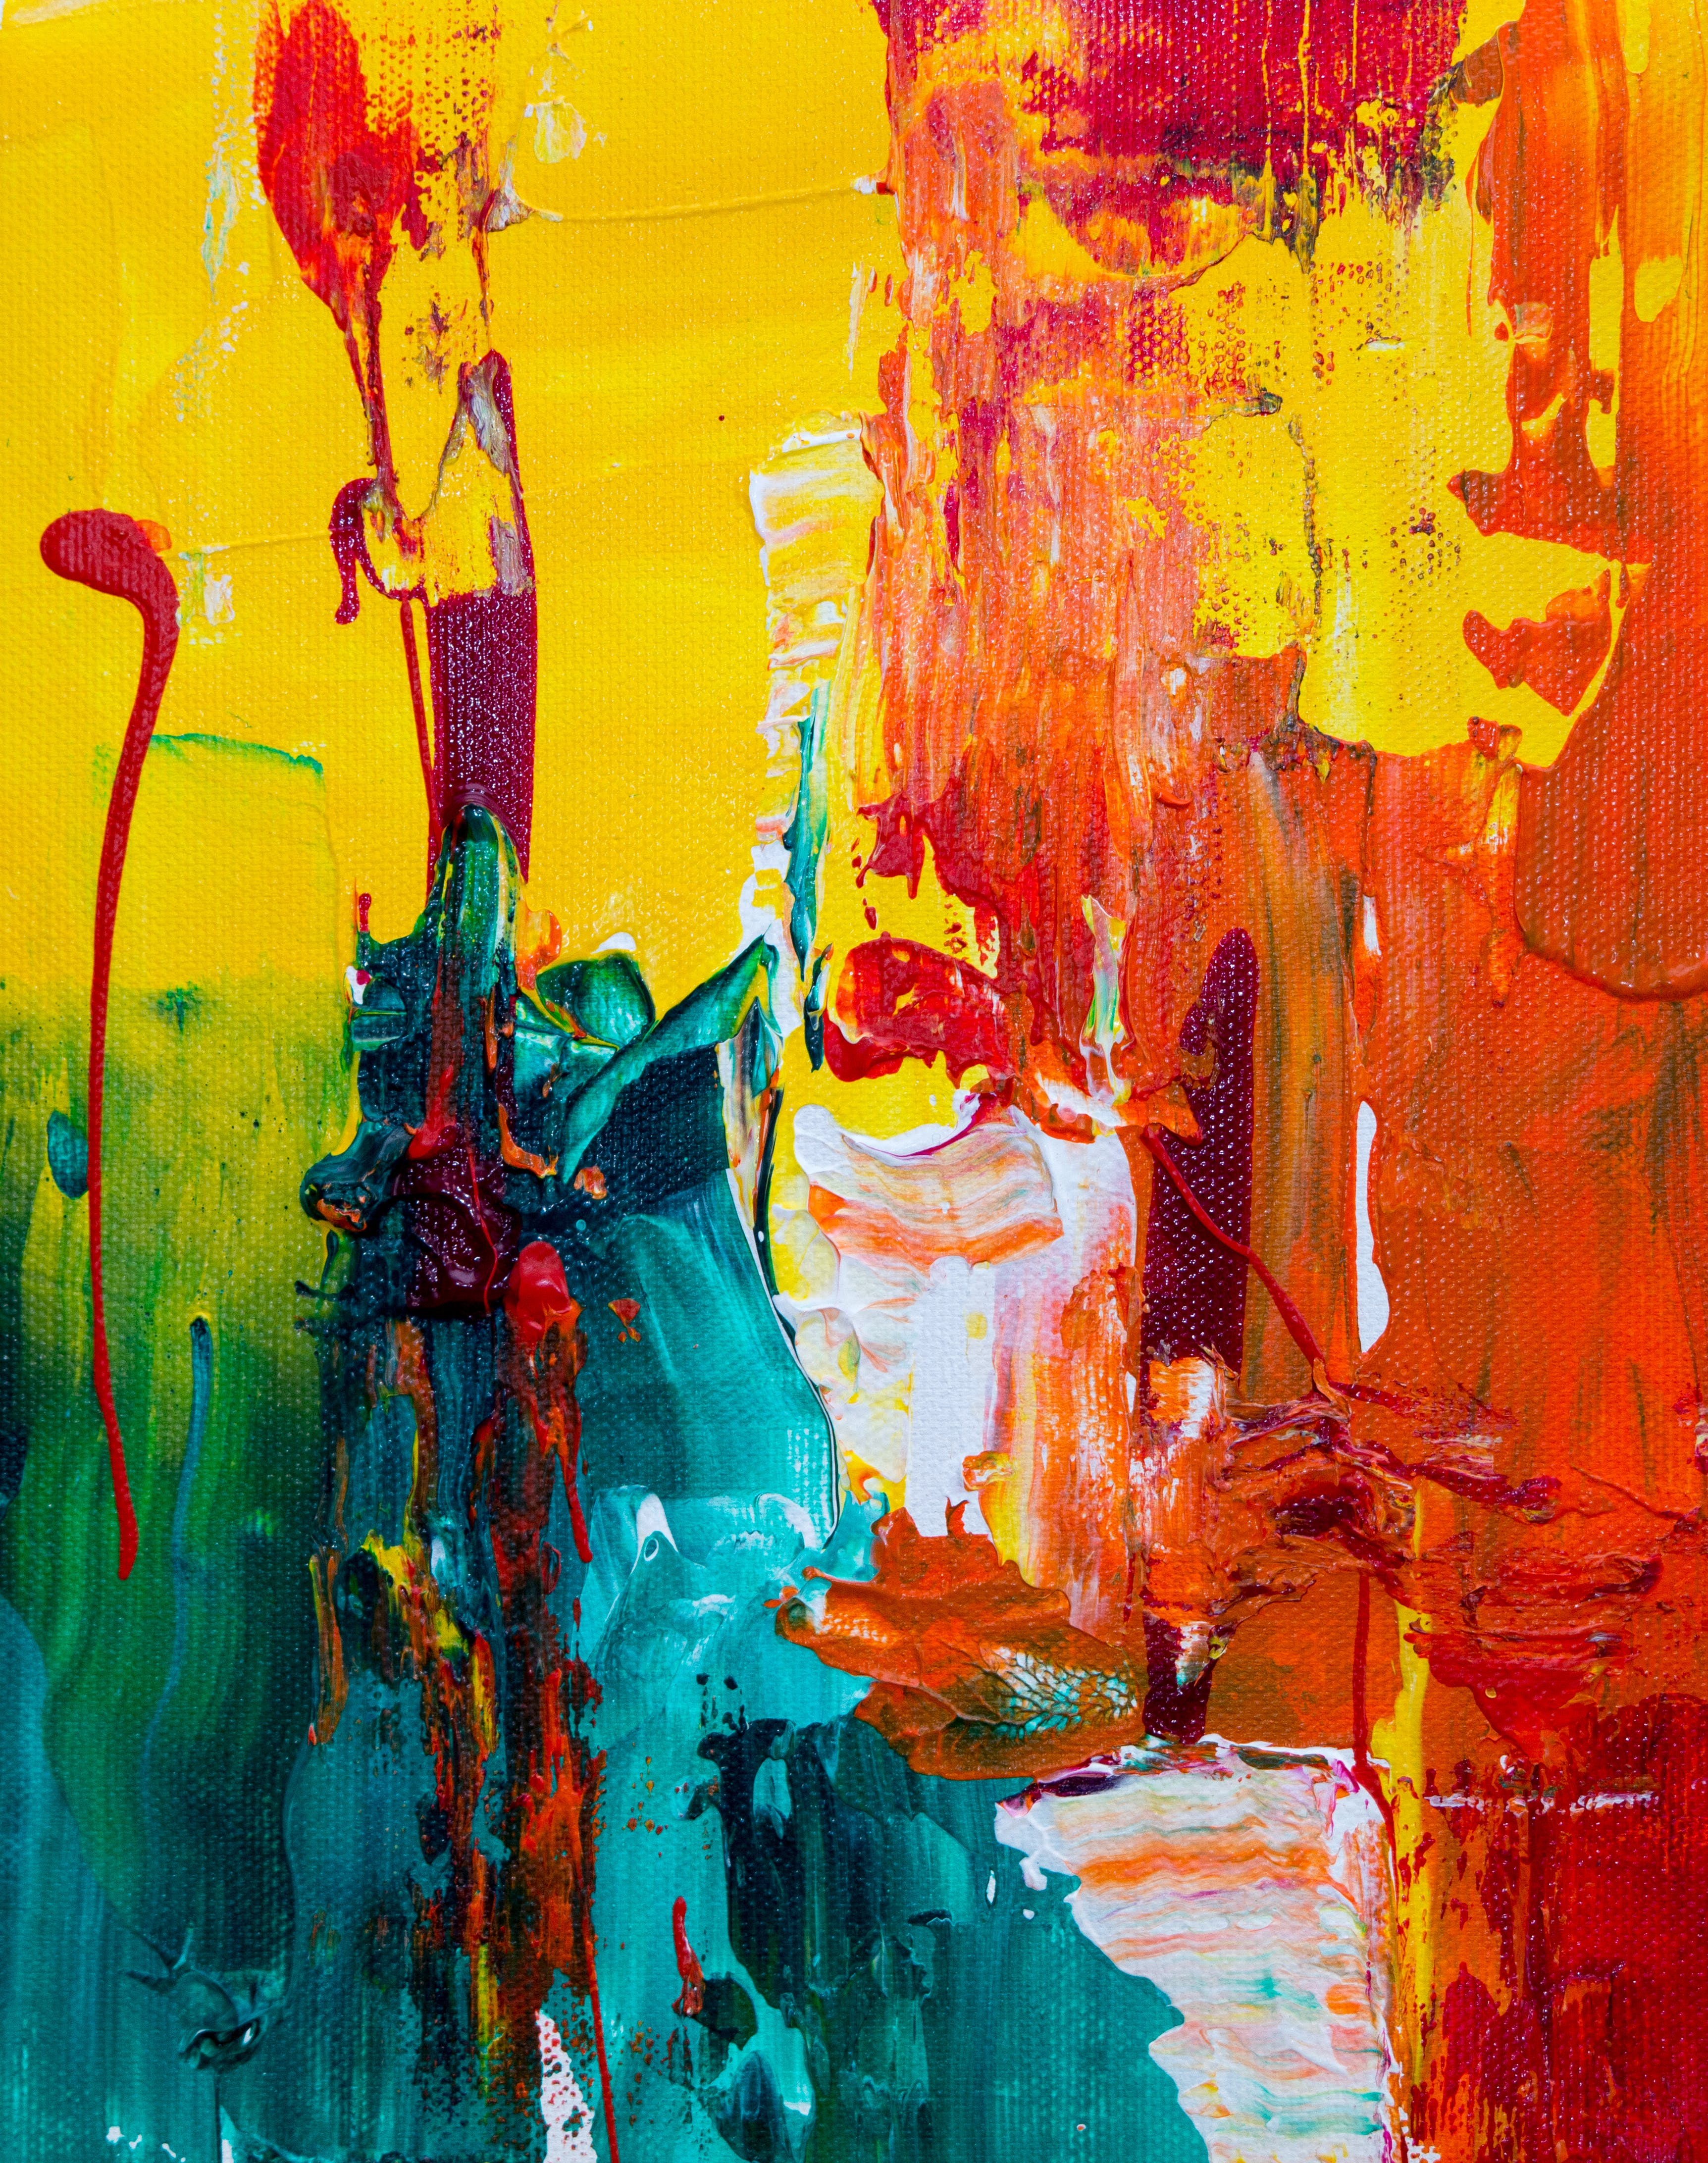 Free stock photo of abstract, abstract expressionism, abstract painting, acrylic paint